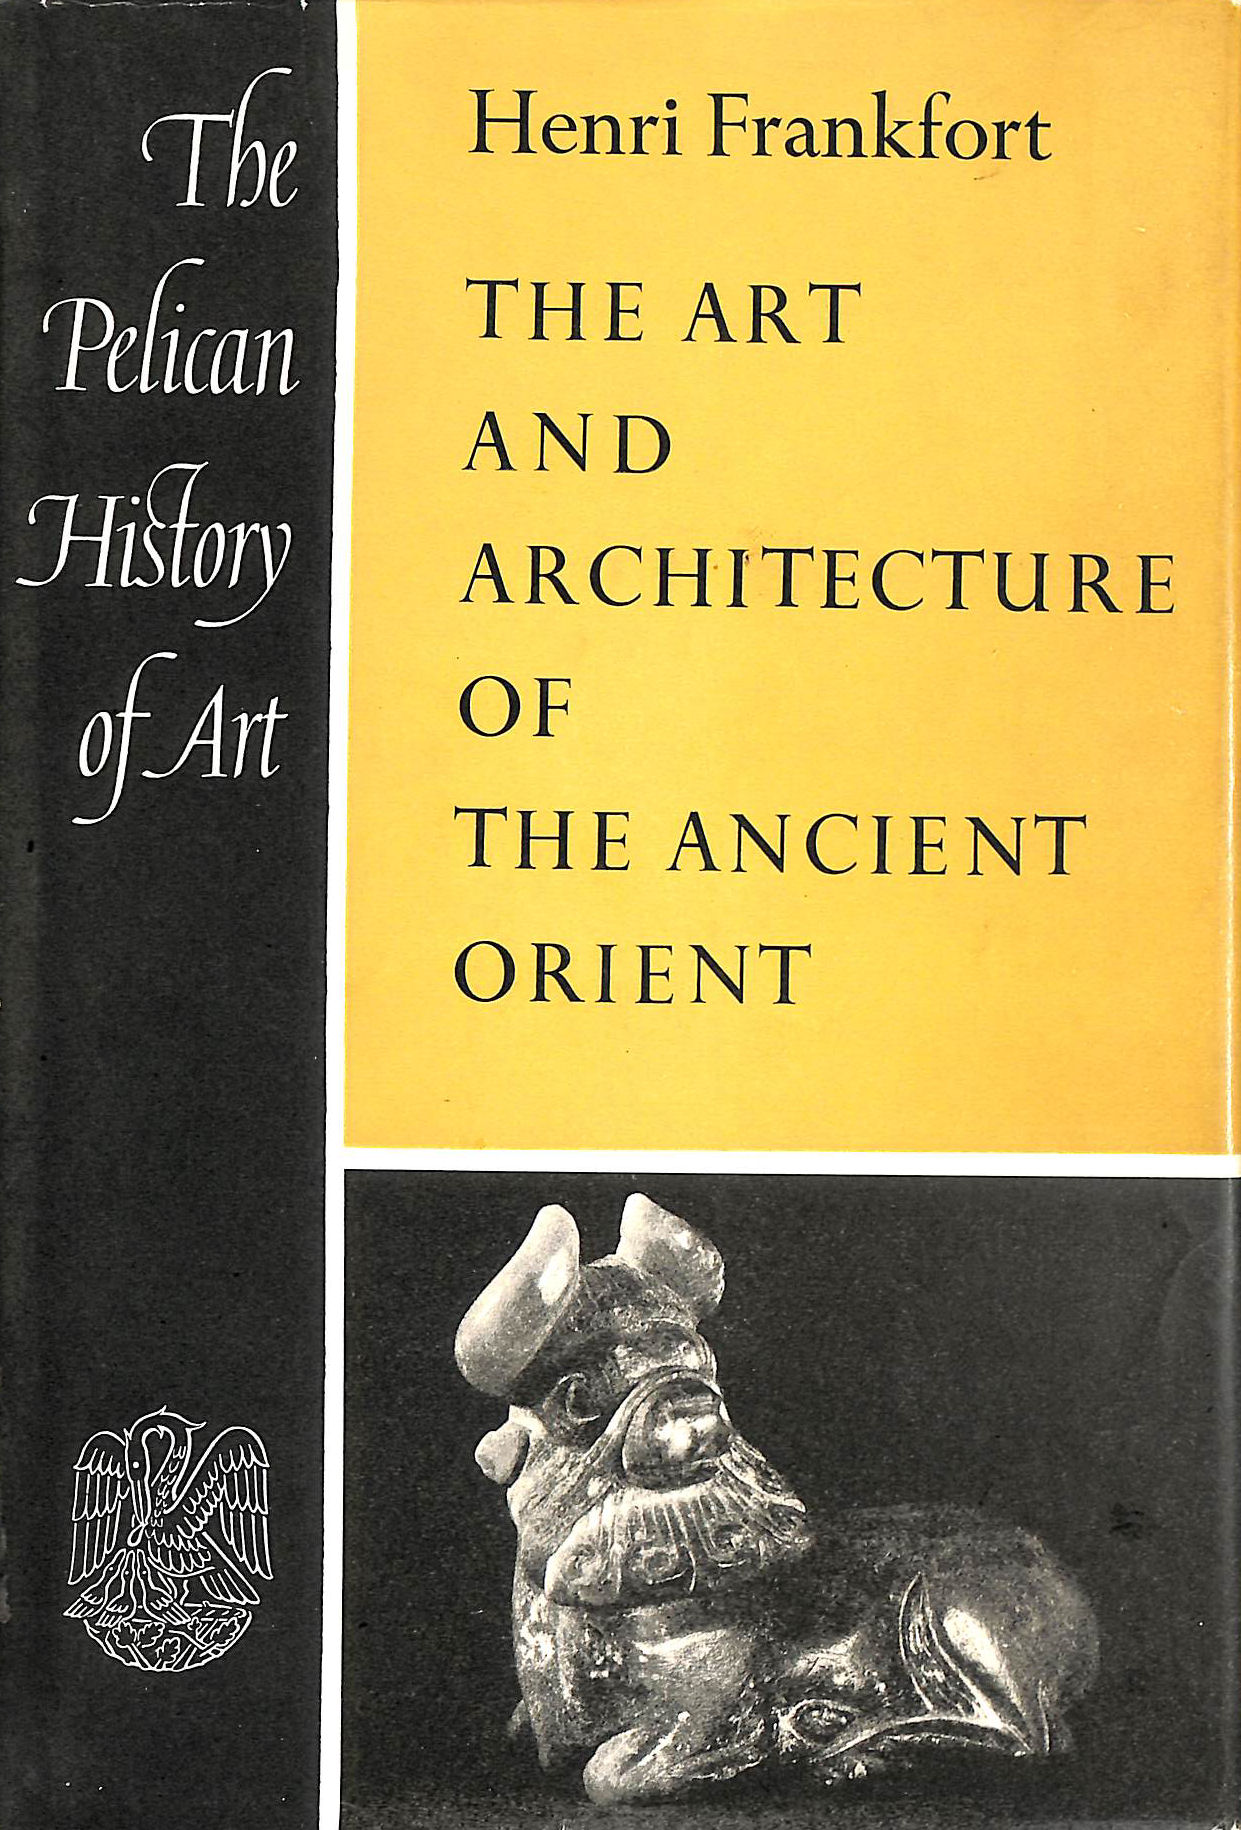 Image for The Art And Architecture Of The Ancient Orient (Pelican History Of Art Series;No.27)